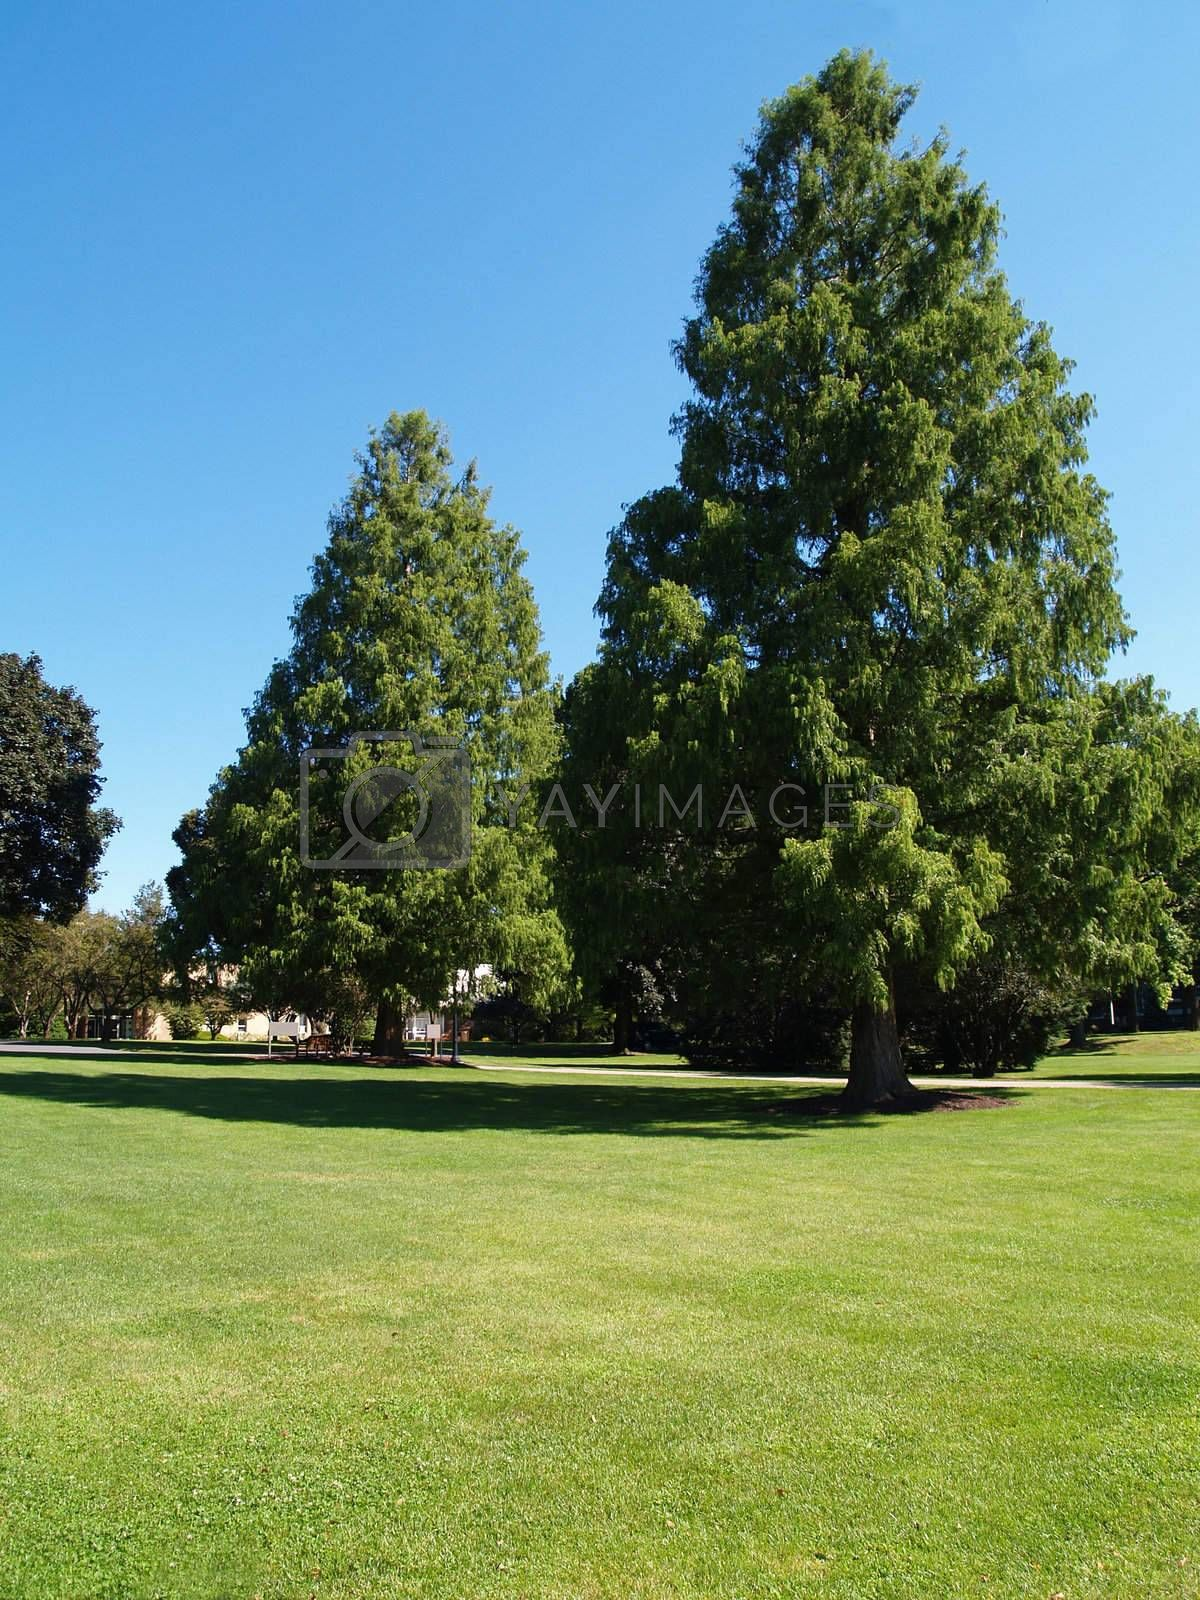 Royalty free image of large evergreen trees by cfarmer